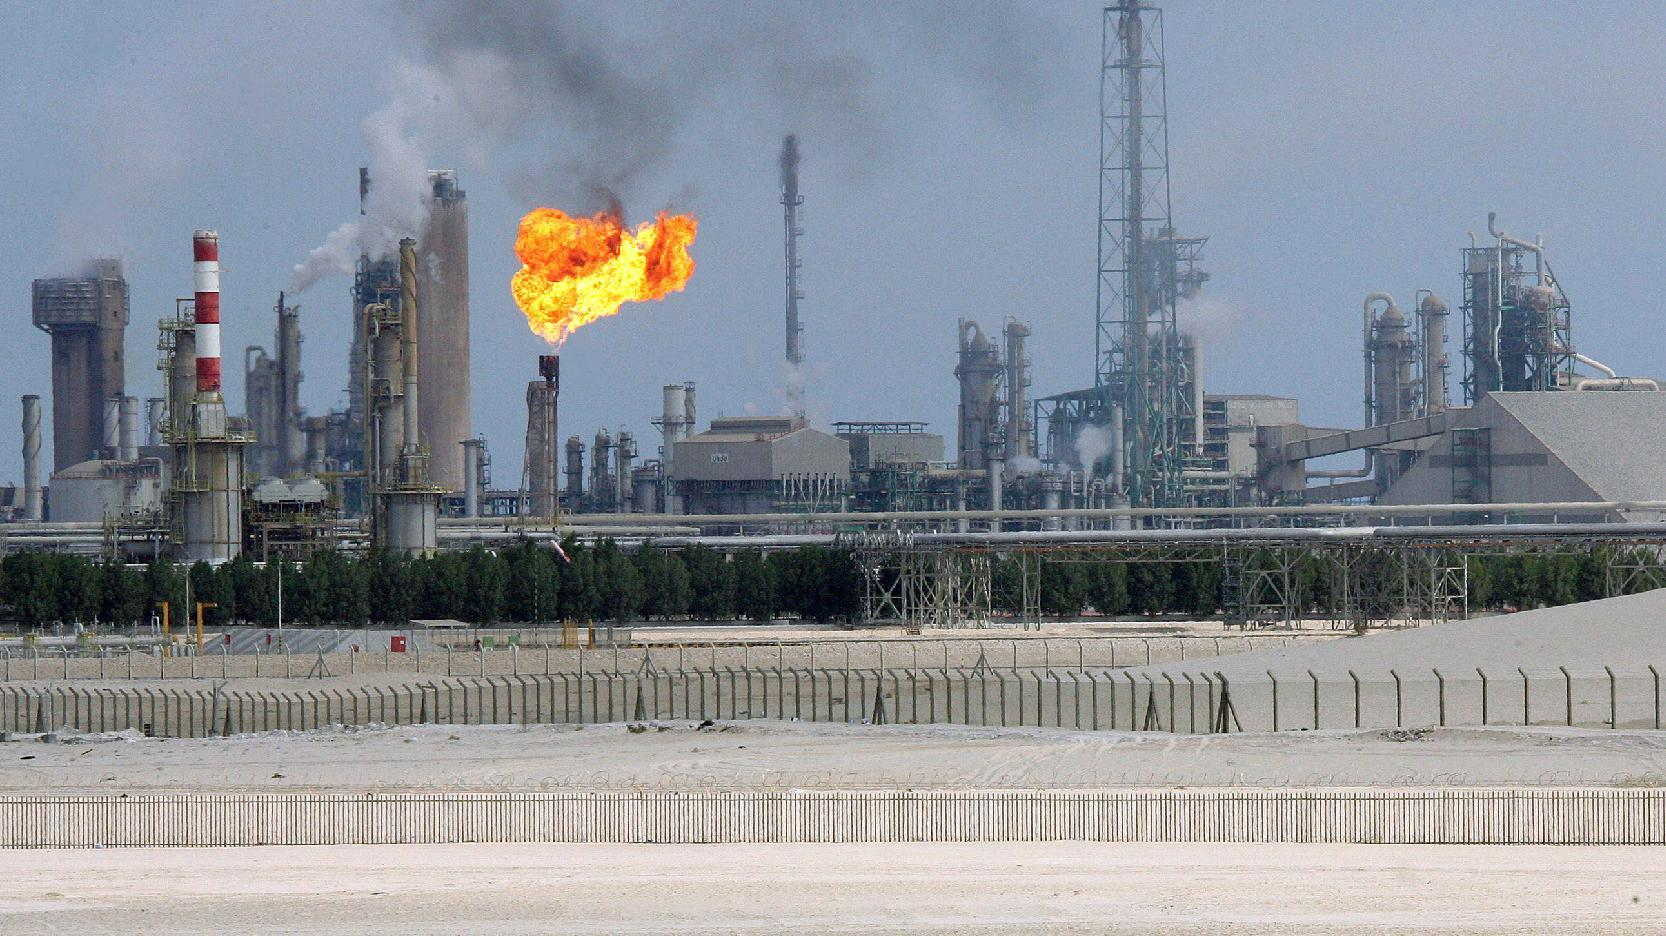 A general view of an oil refinery in the Gulf emirate of Qatar, pictured on February 1, 2006 (AFP Photo/Franck Fife)